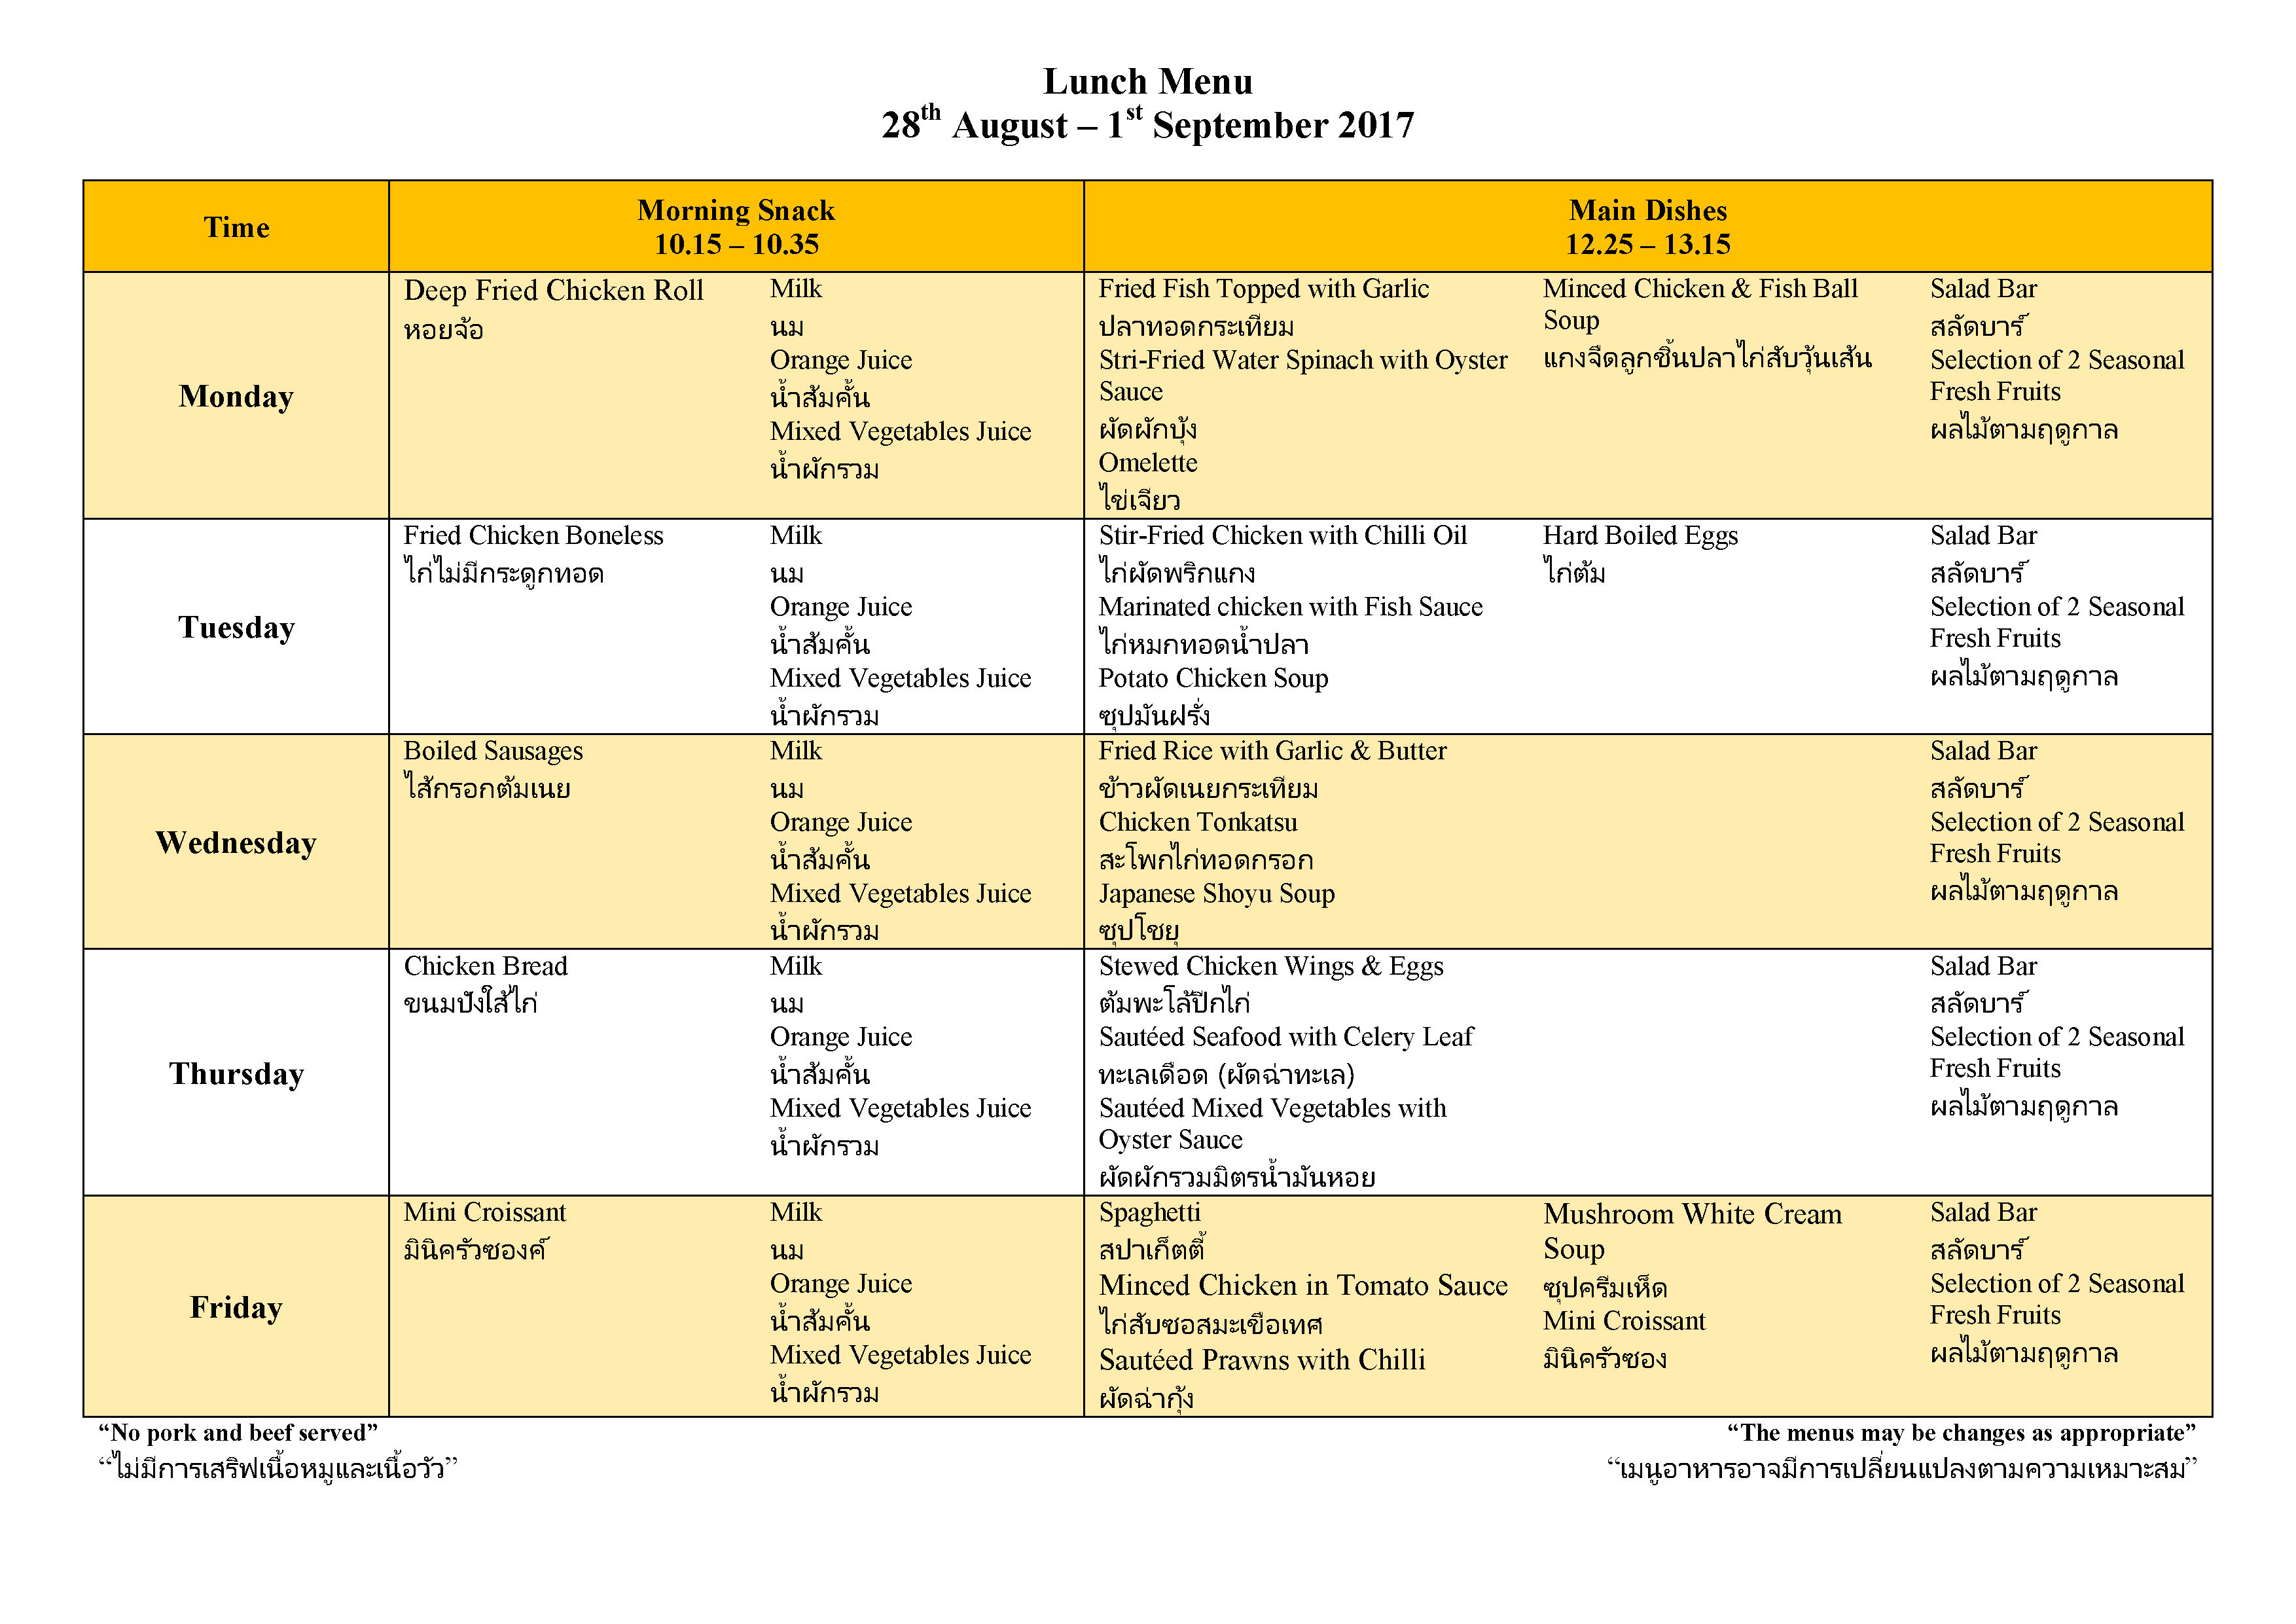 Lunch recipes for 28 Aug - 1 Sept 2017